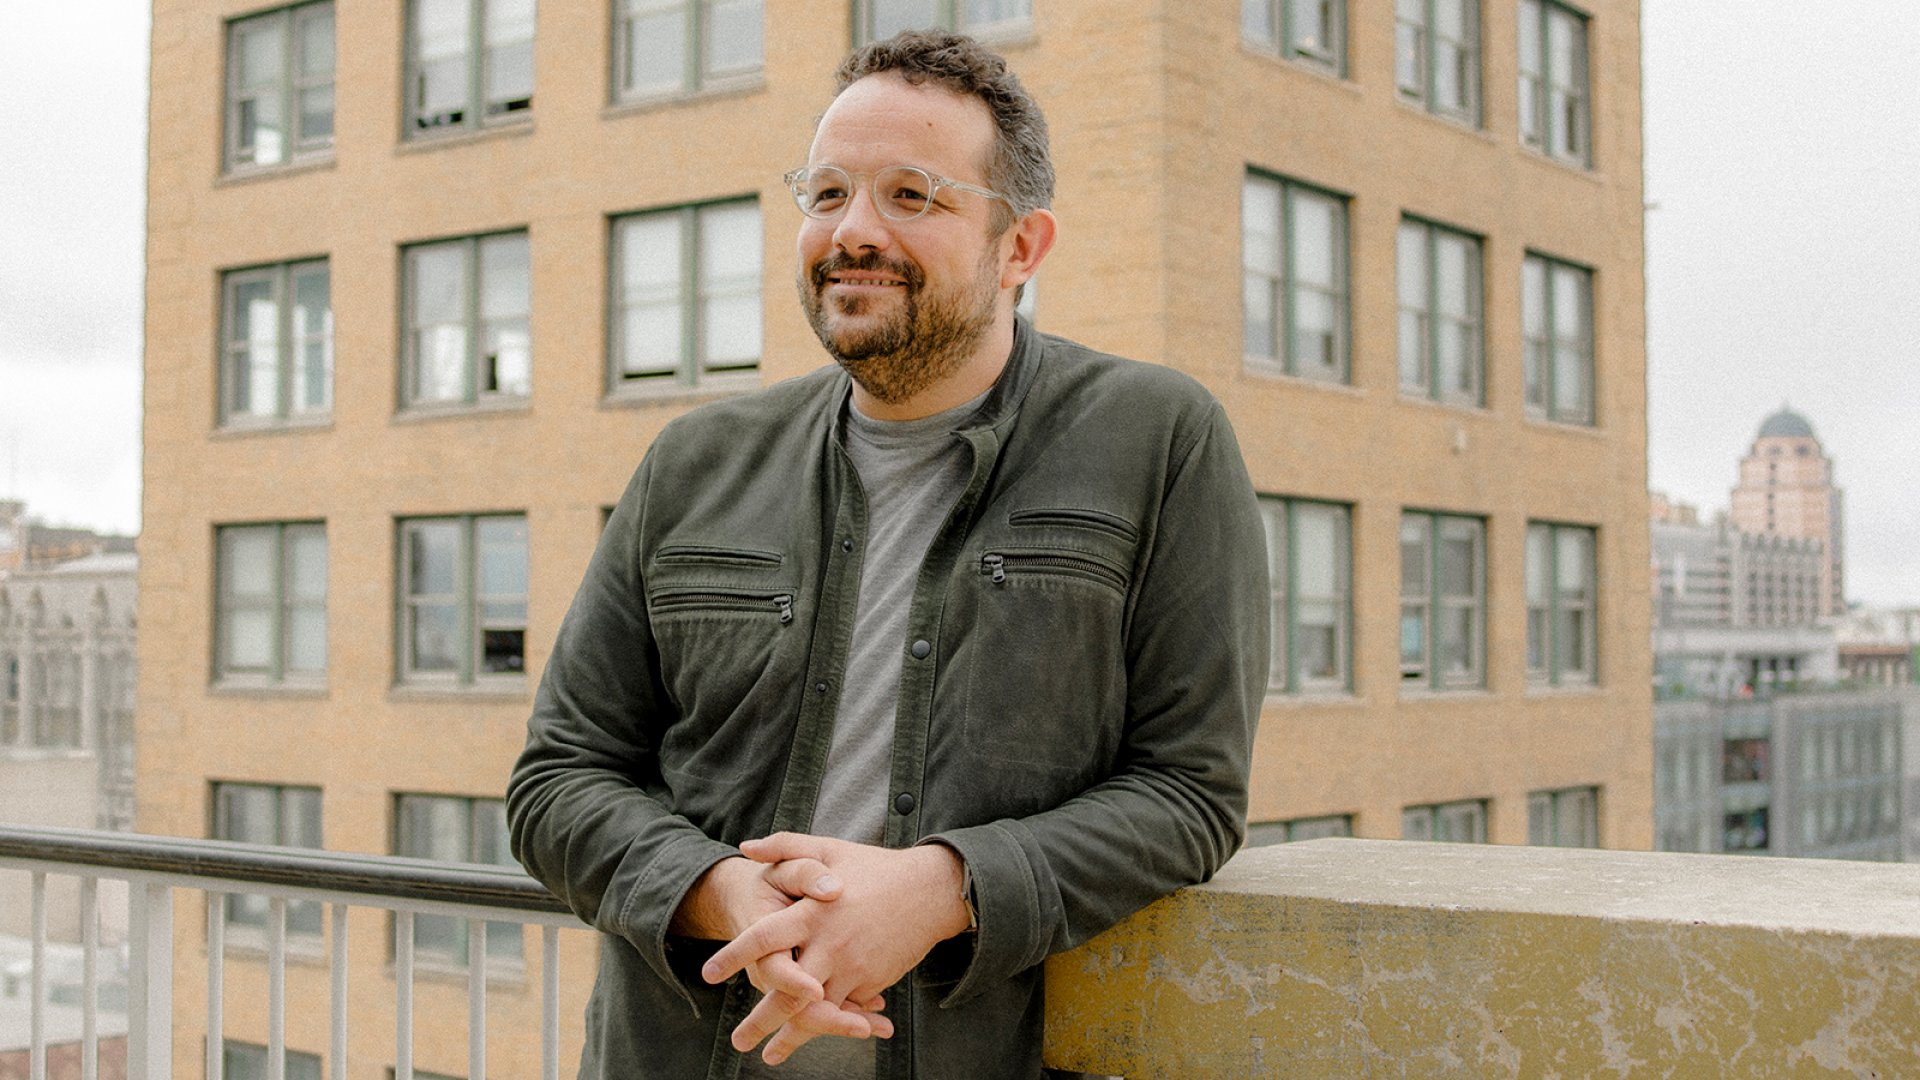 Phil Libin co-founded Redwood City, California-based Evernote in 2007 and stepped down as CEO in 2015. He's now managing director at VC firm General Catalyst.